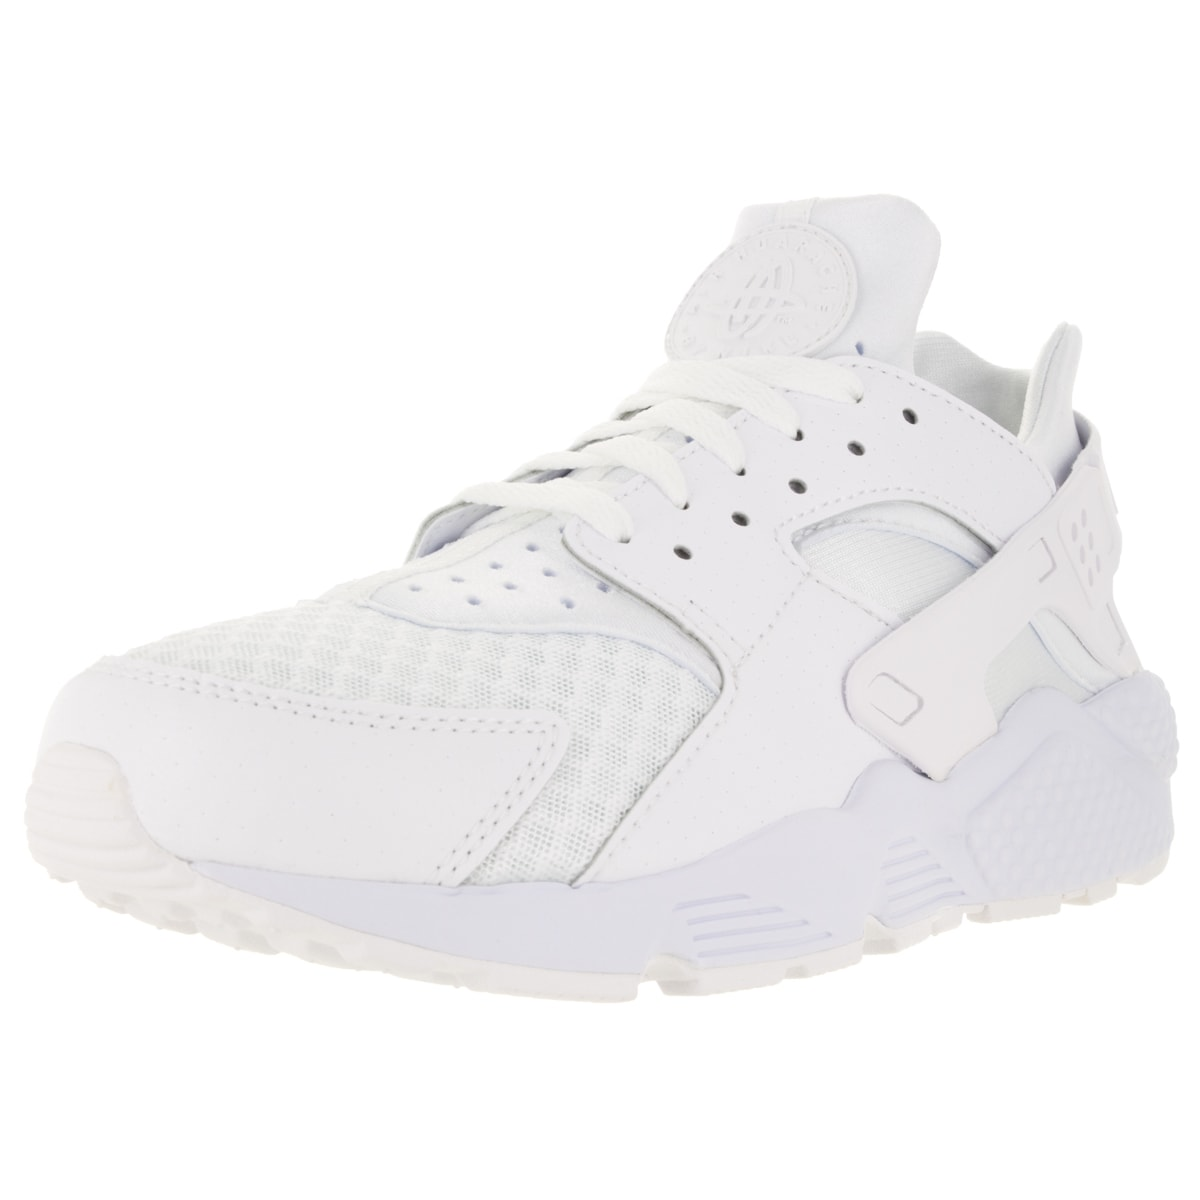 online retailer 14a54 c8d4d ... low price nike 318429 111 mens air huarache exclusive flint spin fabric  trainer sneaker 10.5 dm